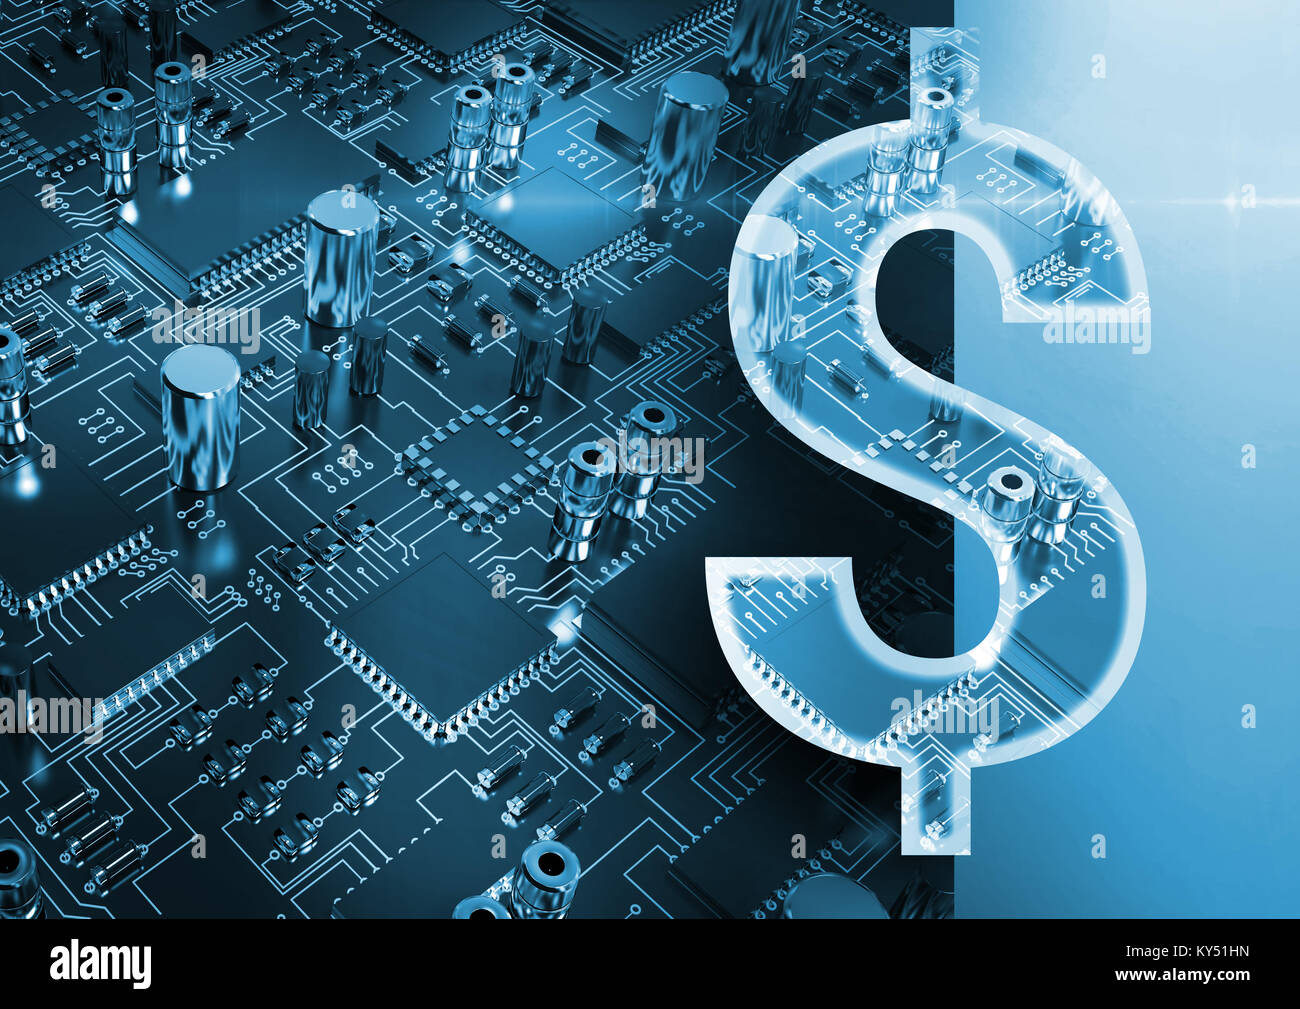 Composite image of illustrative image of dollar sign - Stock Image